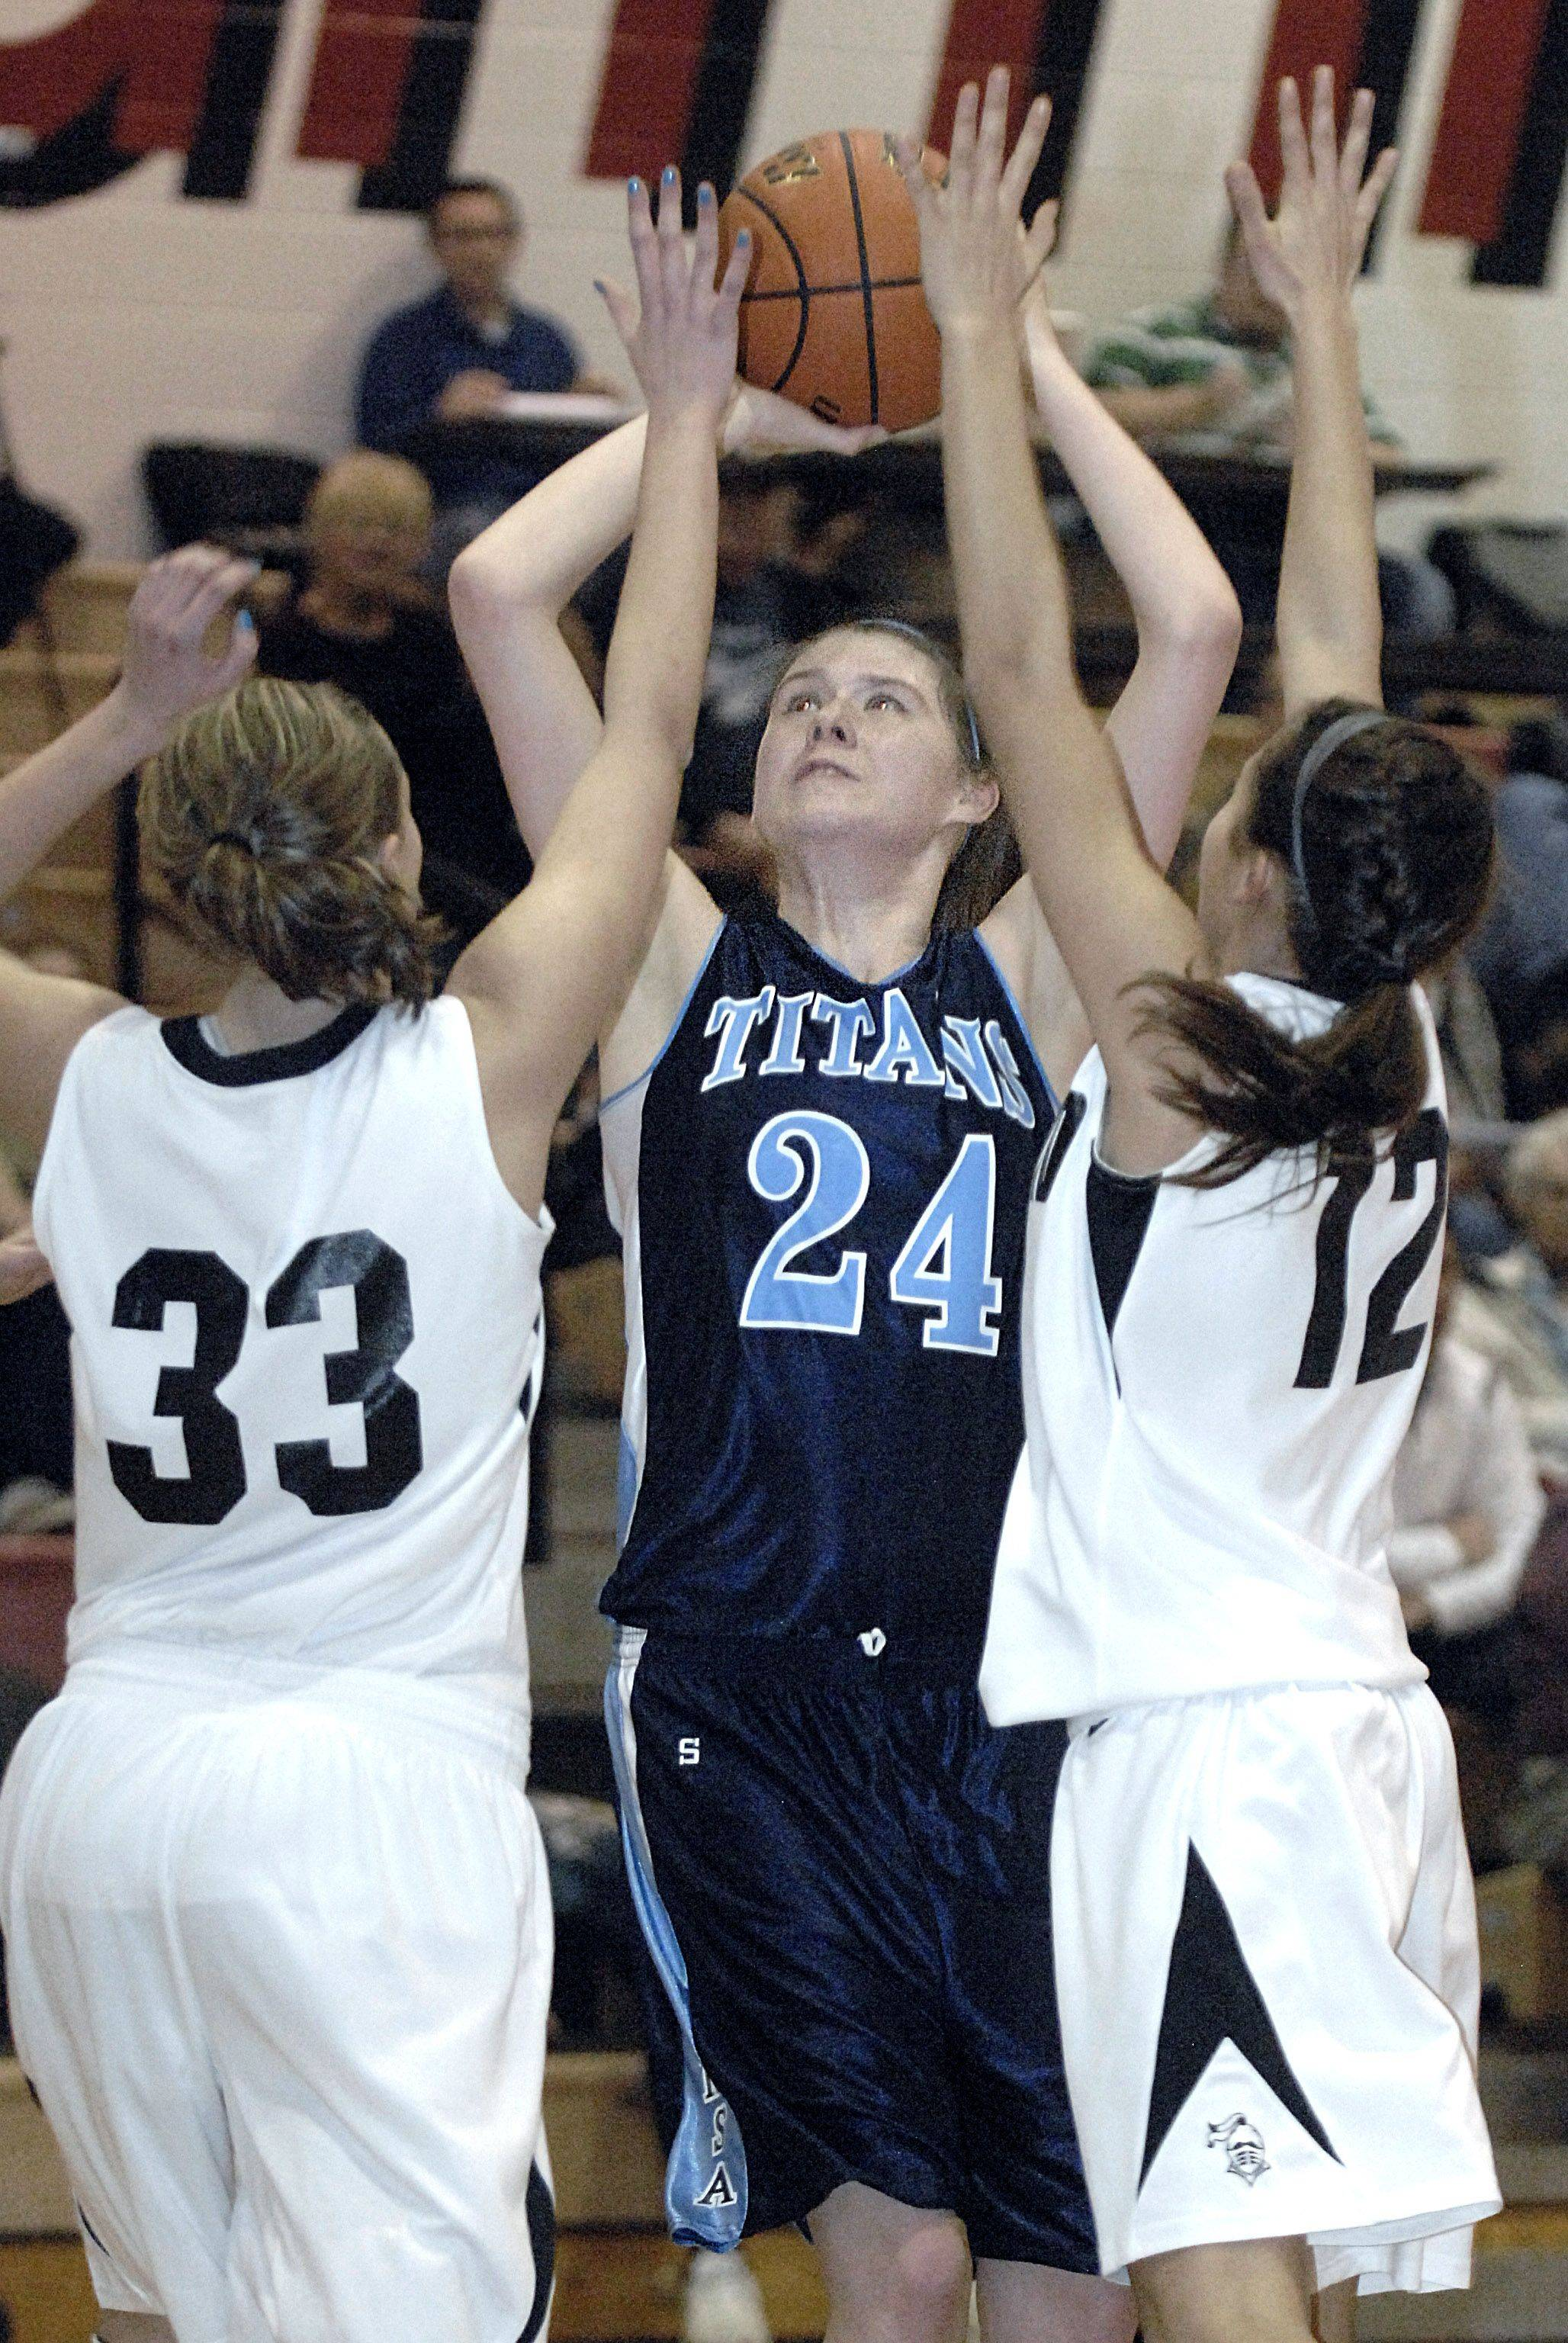 IMSA's Lindsey Conley is swarmed by Kaneland's Marina Schaefer, left, and Ashley Castellanos in the third quarter of regional game on Wednesday, February 15.